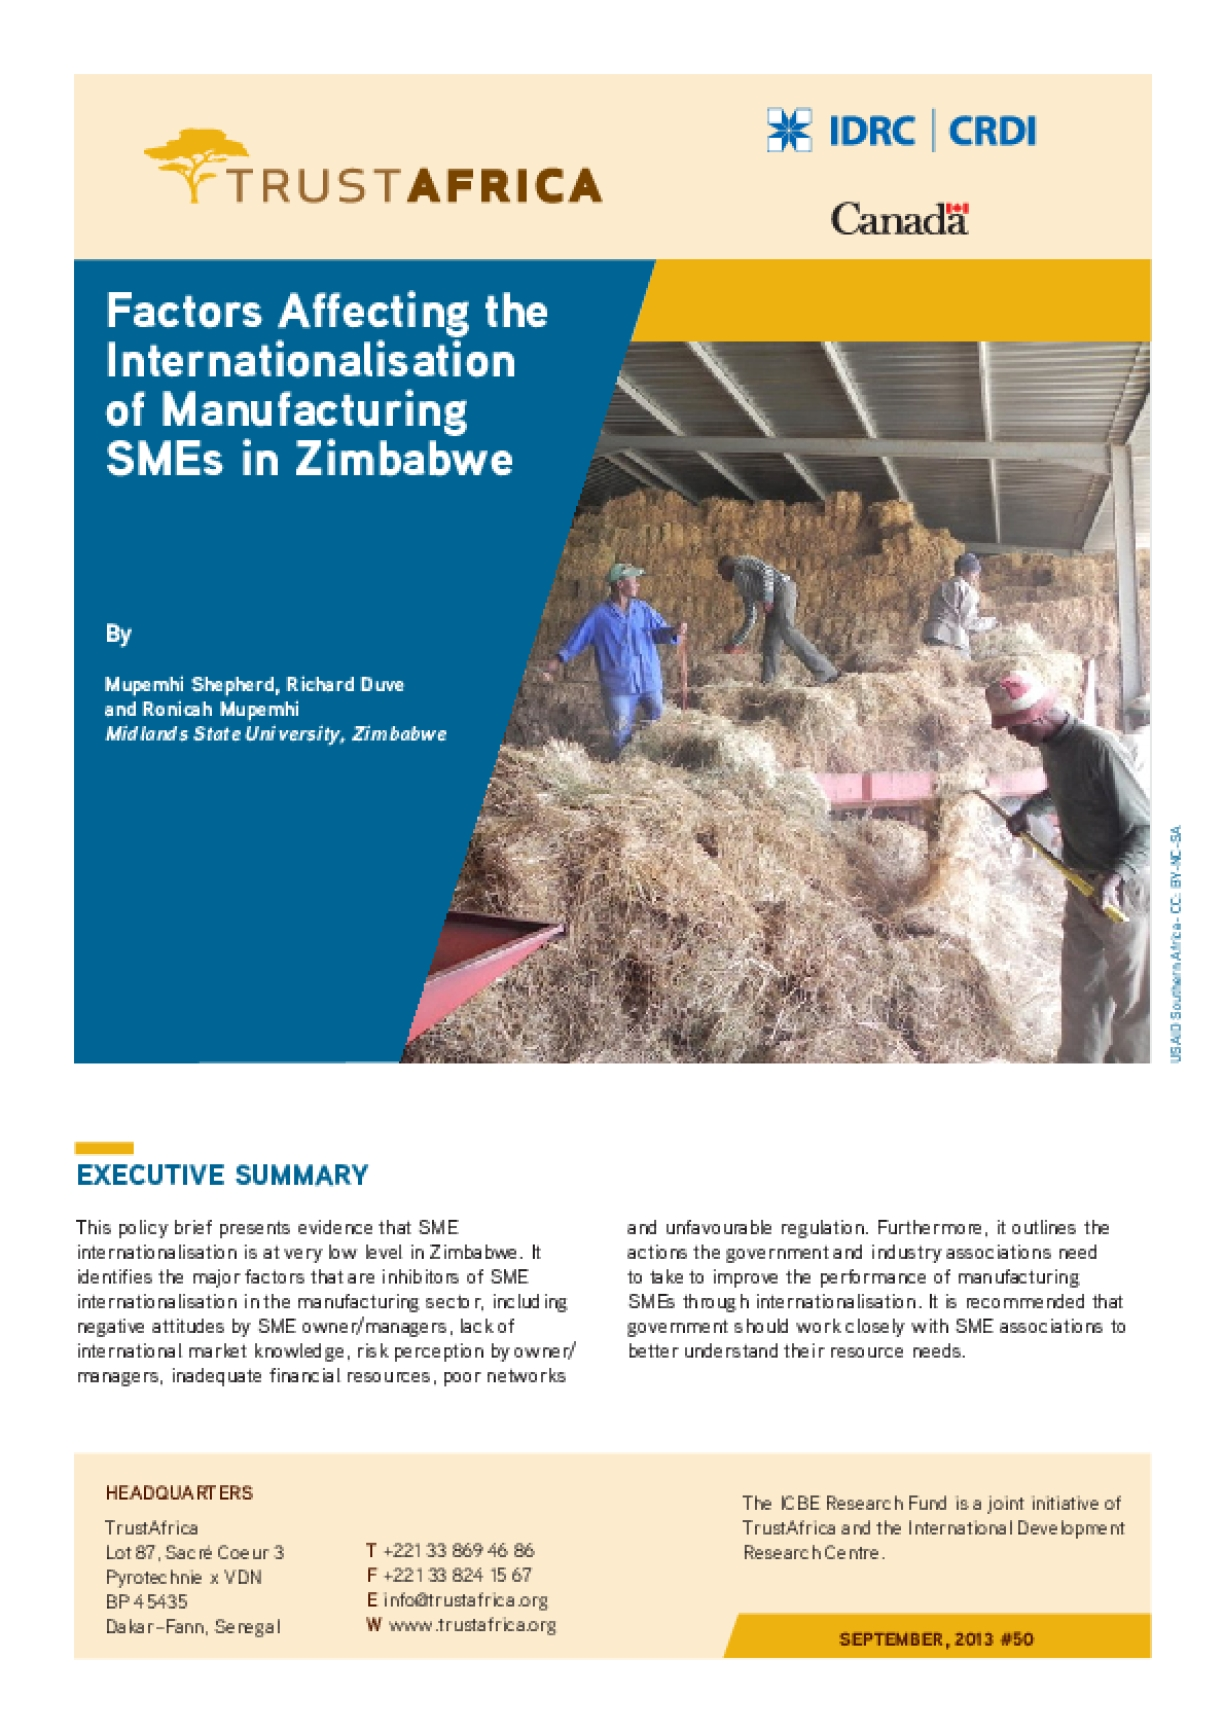 Factors Affecting the Internationalisation of Manufacturing SMEs in Zimbabwe